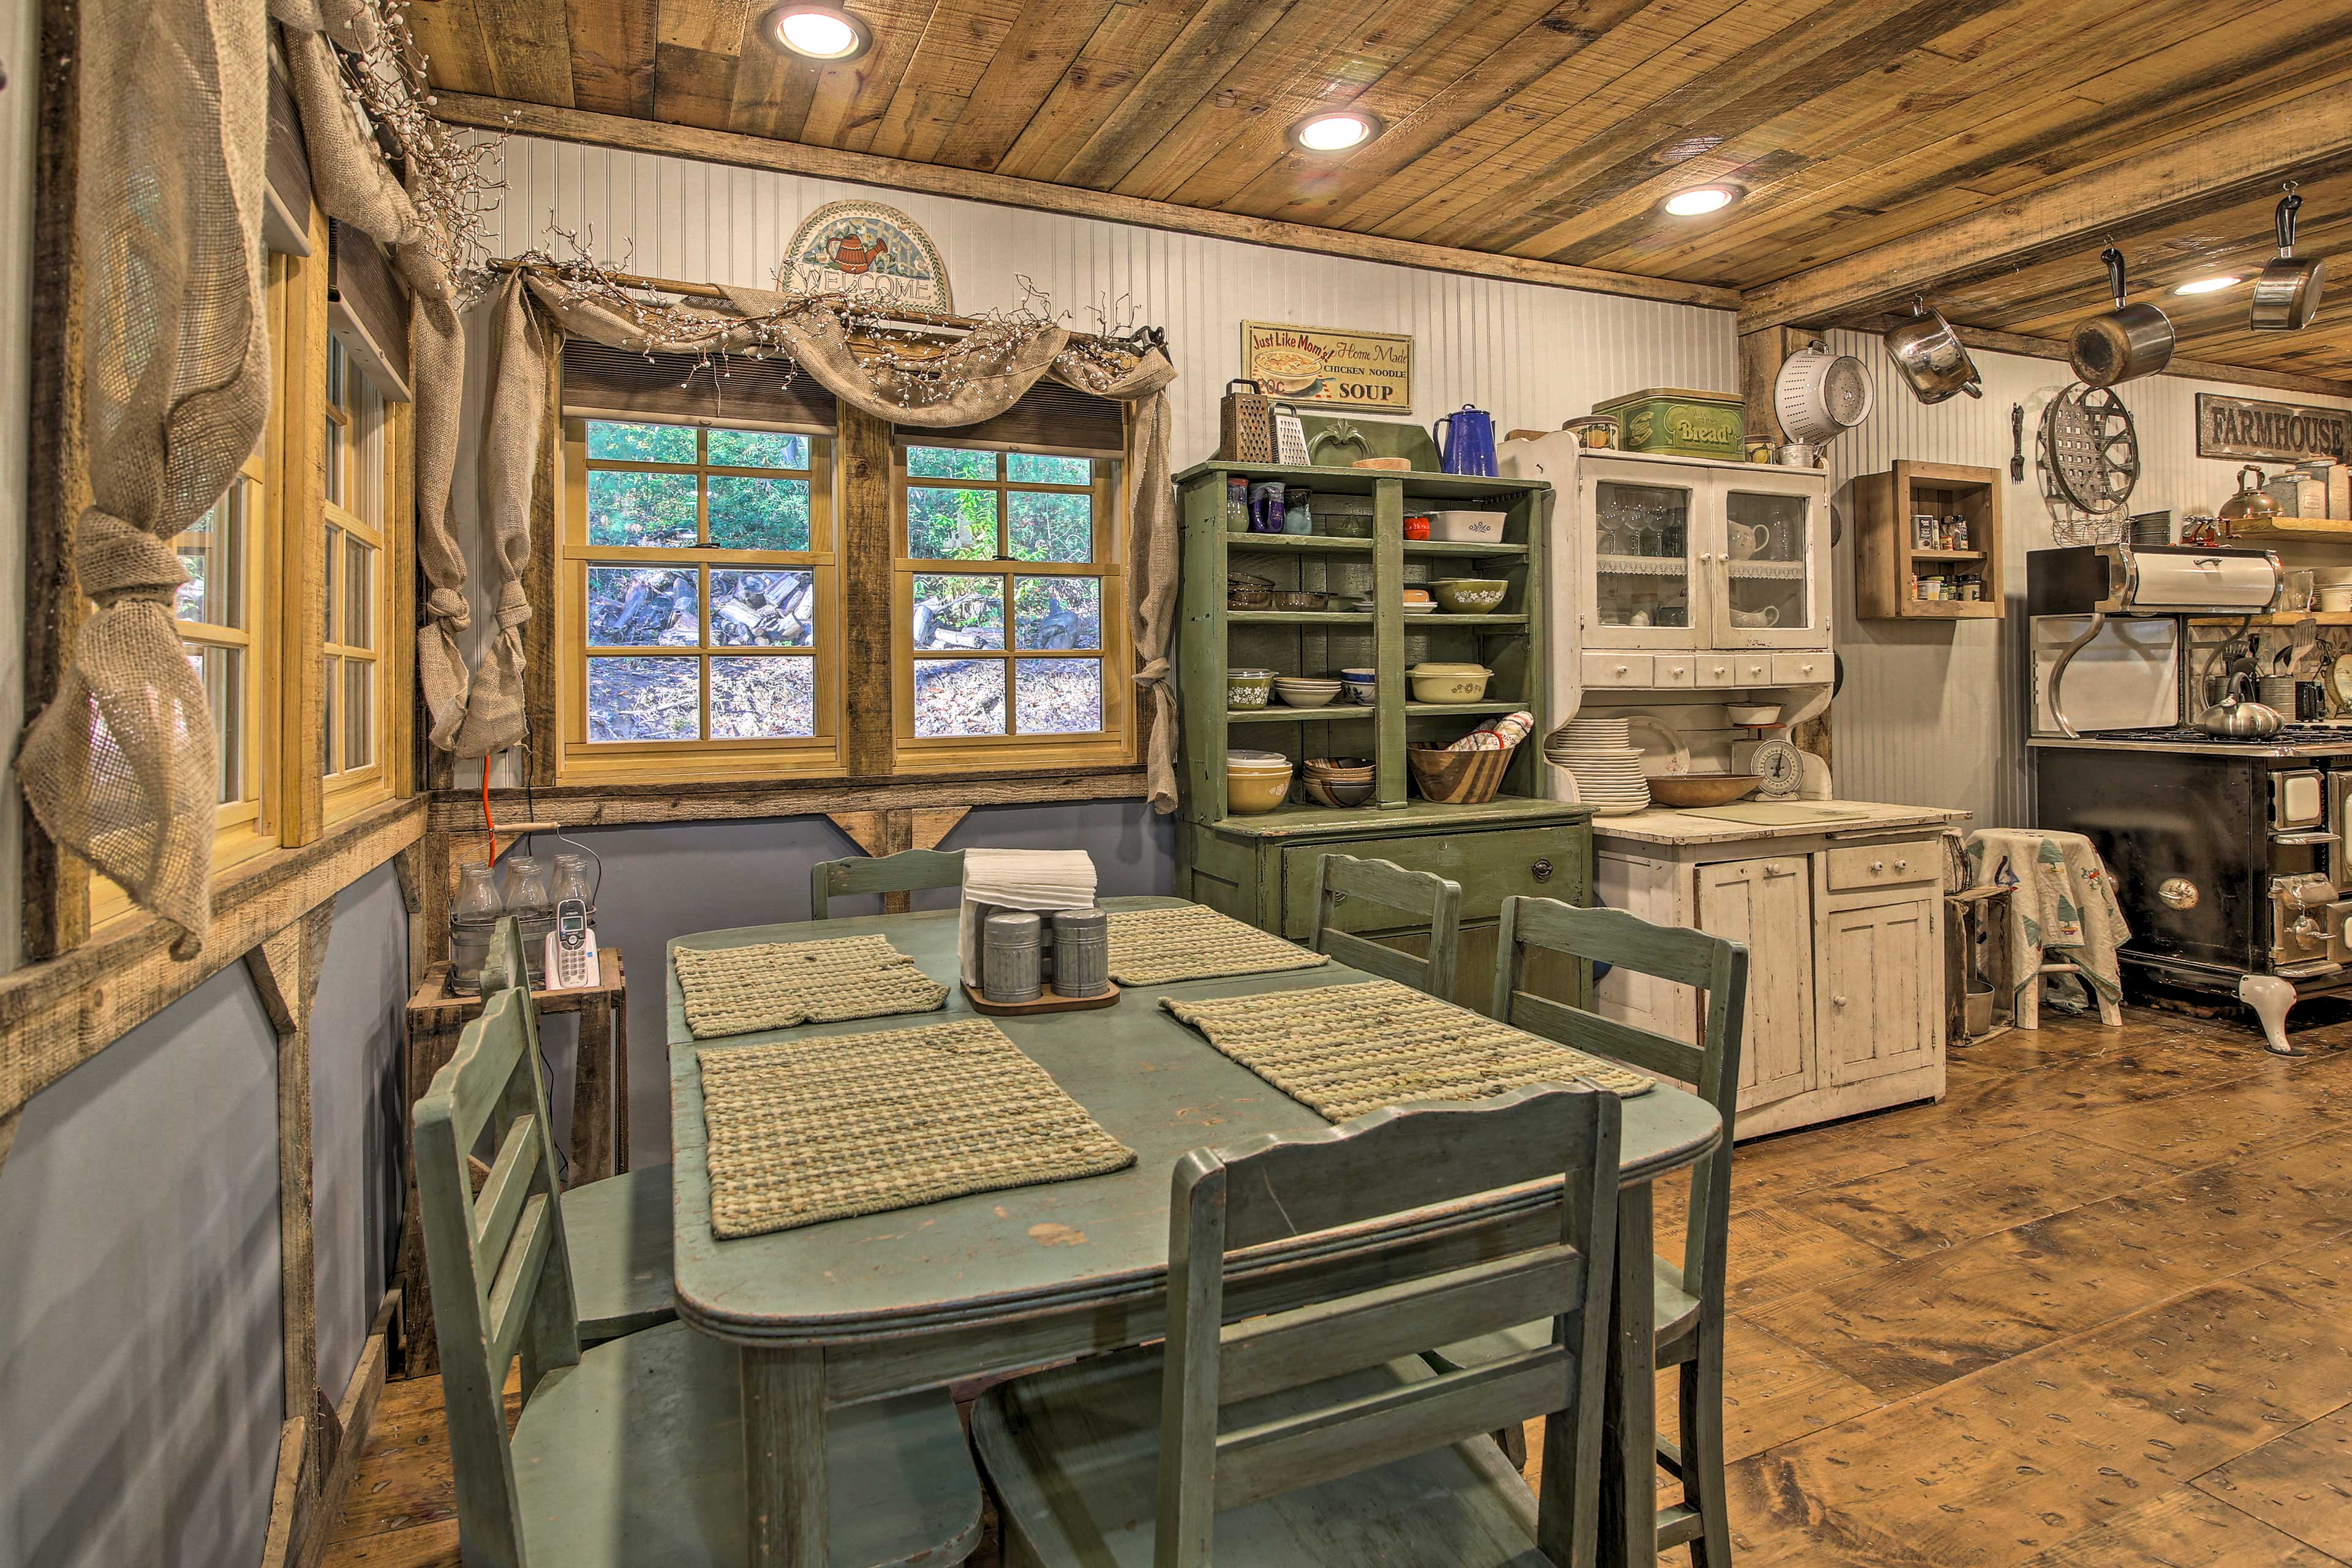 The wood elements and buffet hutches fit right into this rustic kitchen.